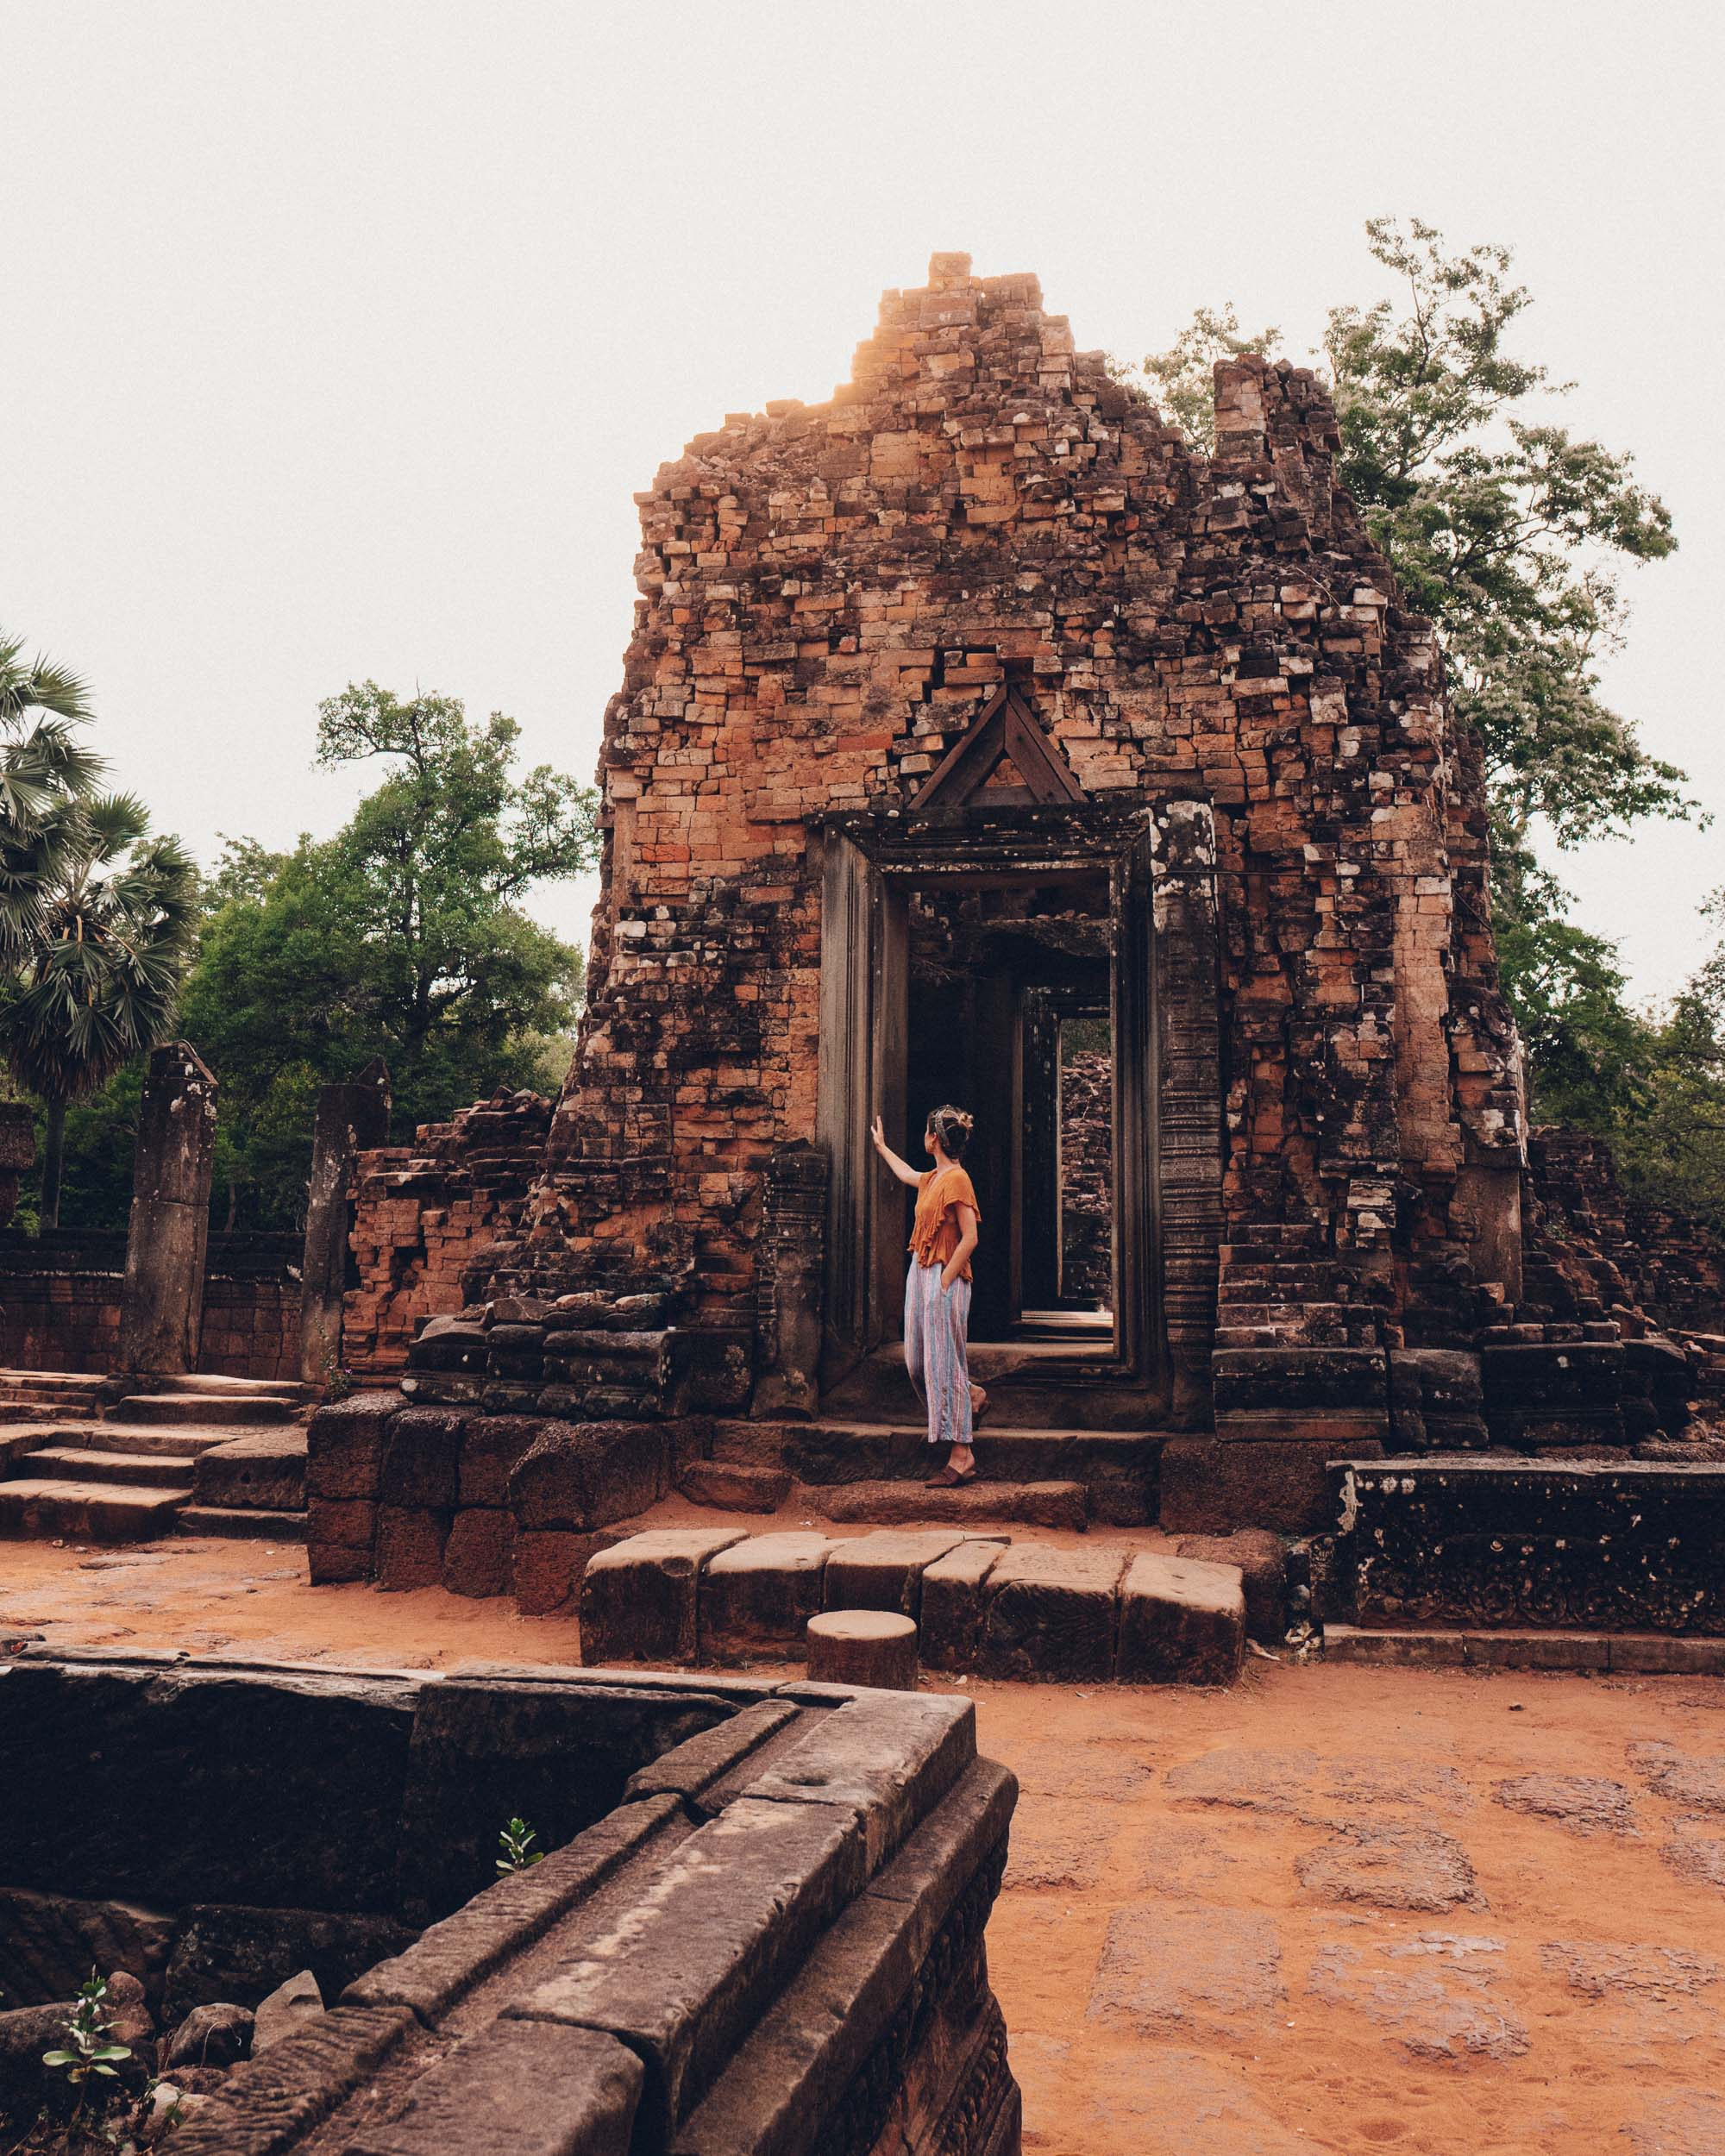 Pre Rup Temple in Siem Reap Cambodia via @finduslost